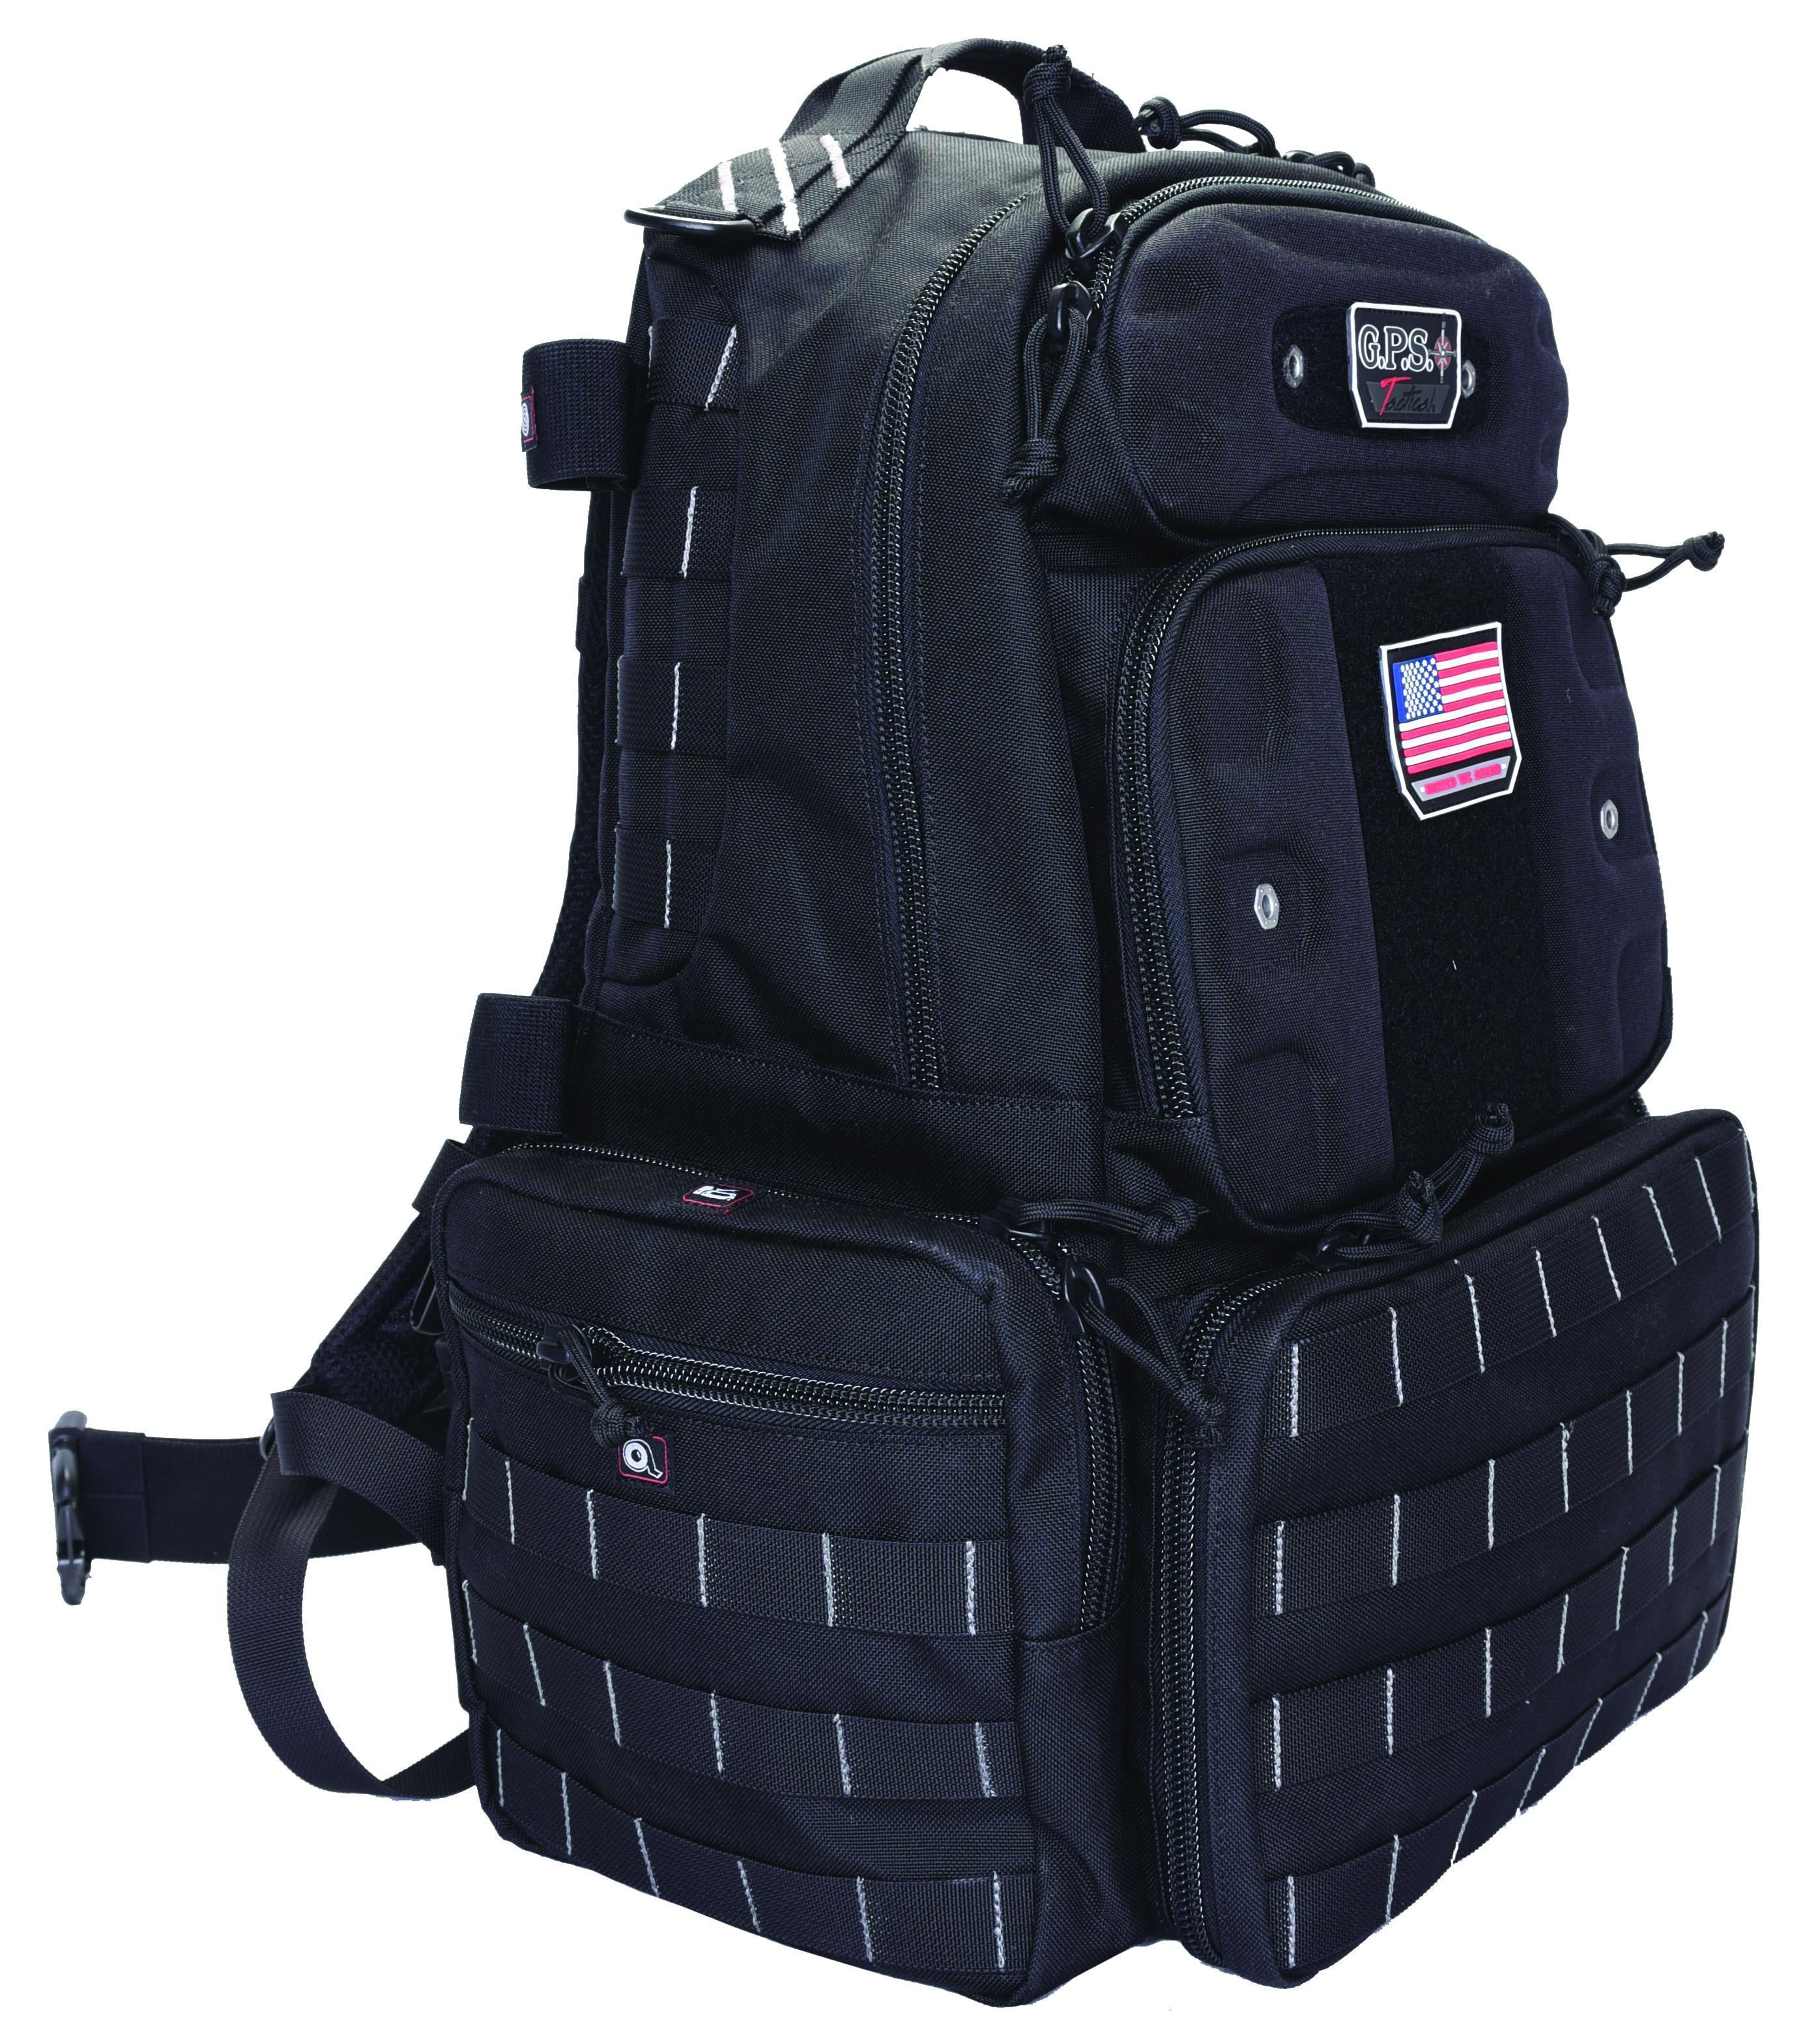 GPS Tactical Range Backpack - Tall